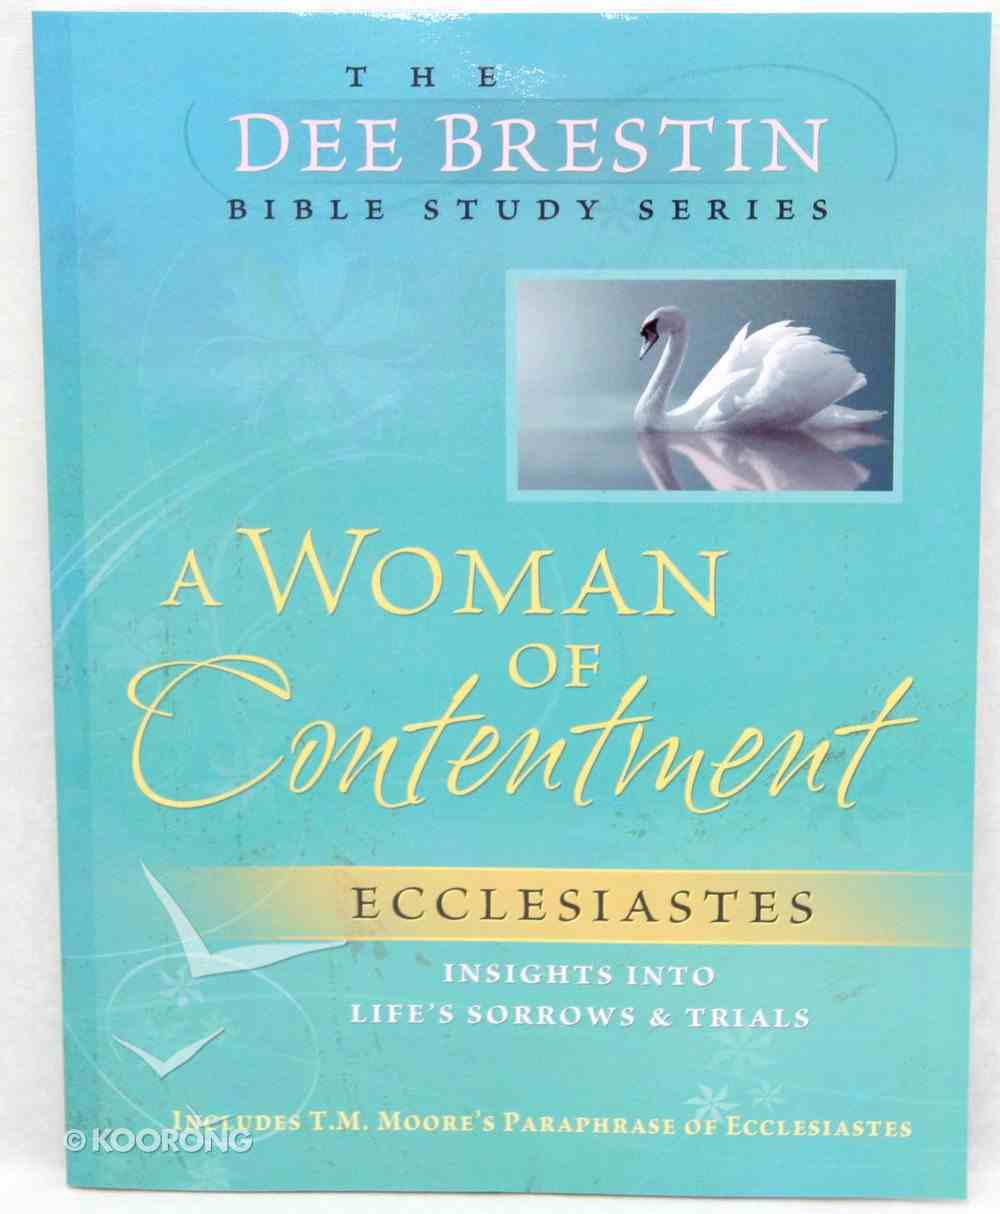 A Woman of Contentment (Dee Brestin Bible Study Series) Paperback